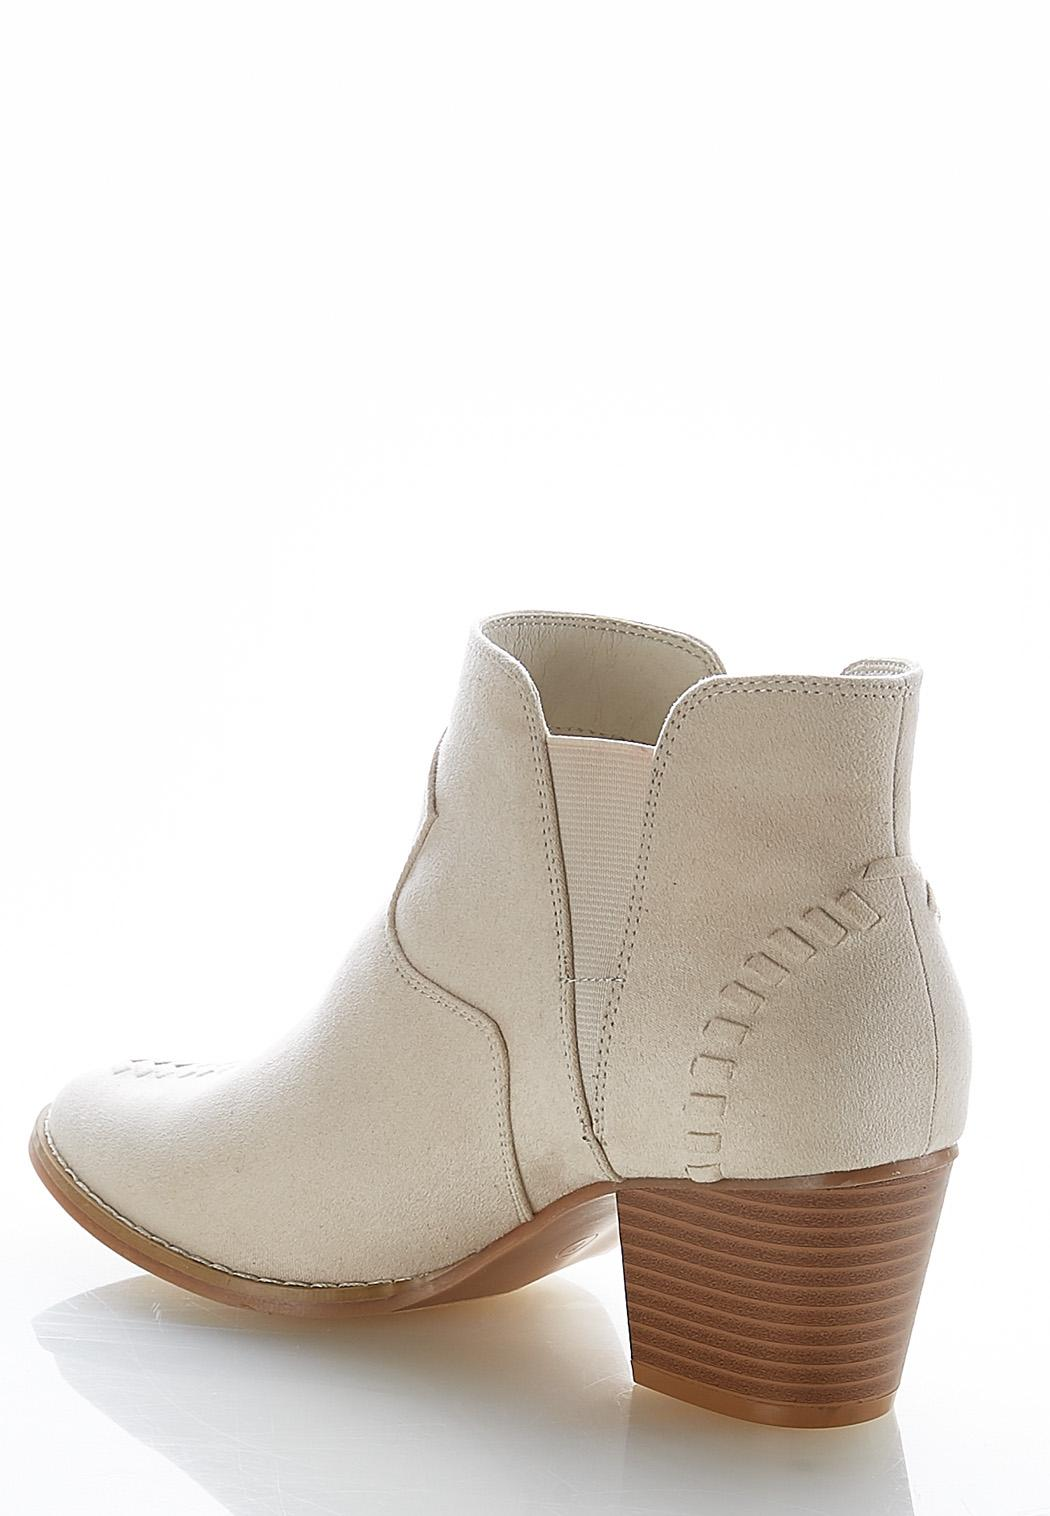 Stitched Ankle Boots (Item #43988305)